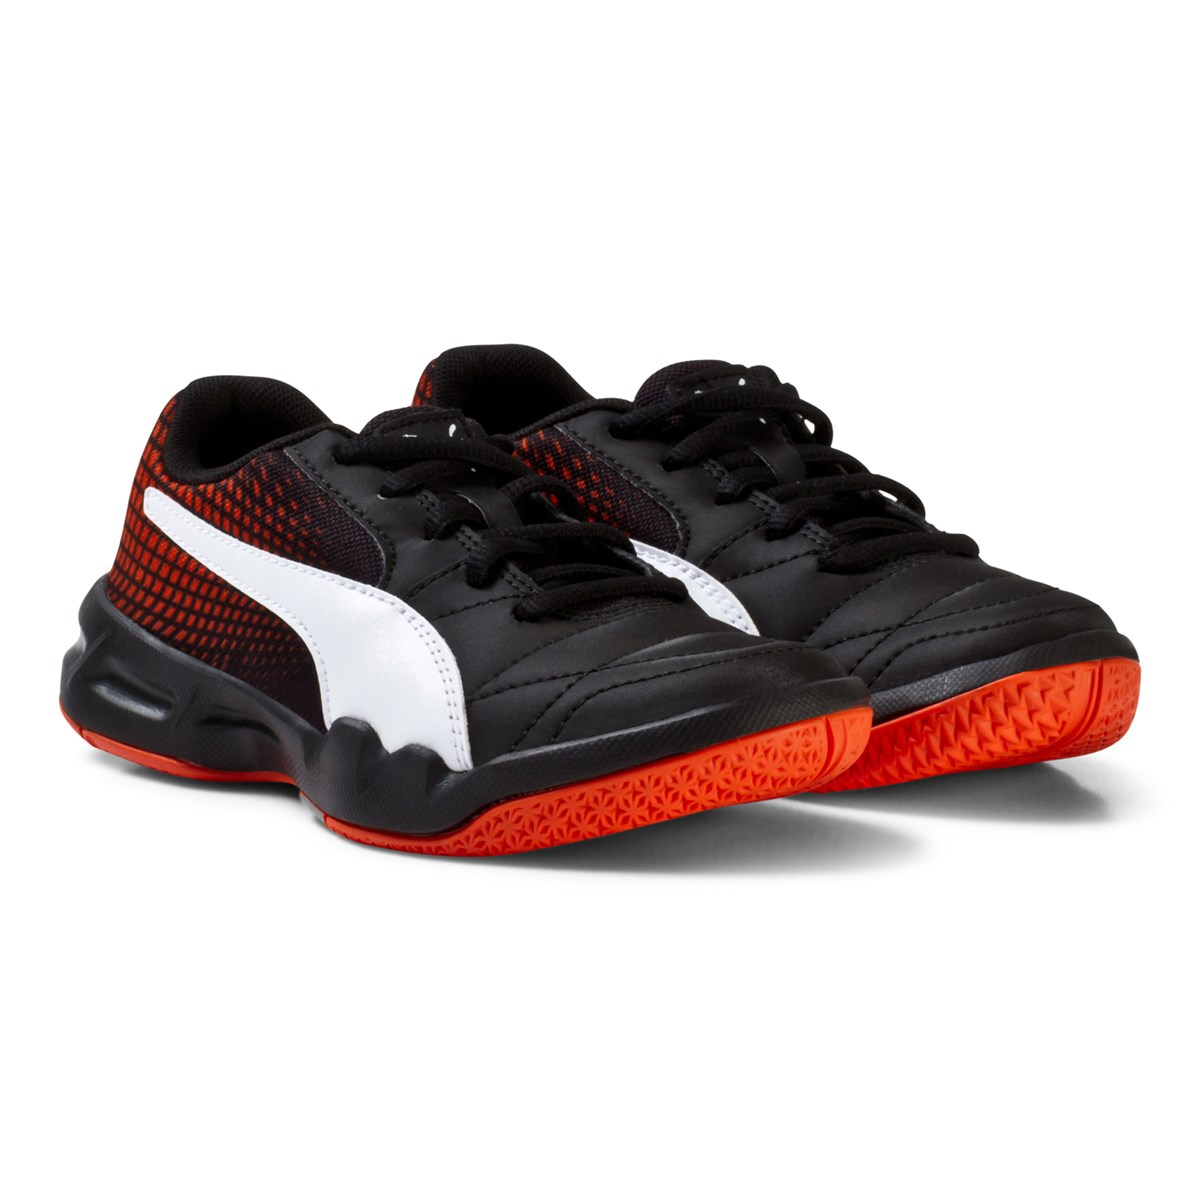 16a65f1a4 Puma Black and Red Veloz Indoor Trainers